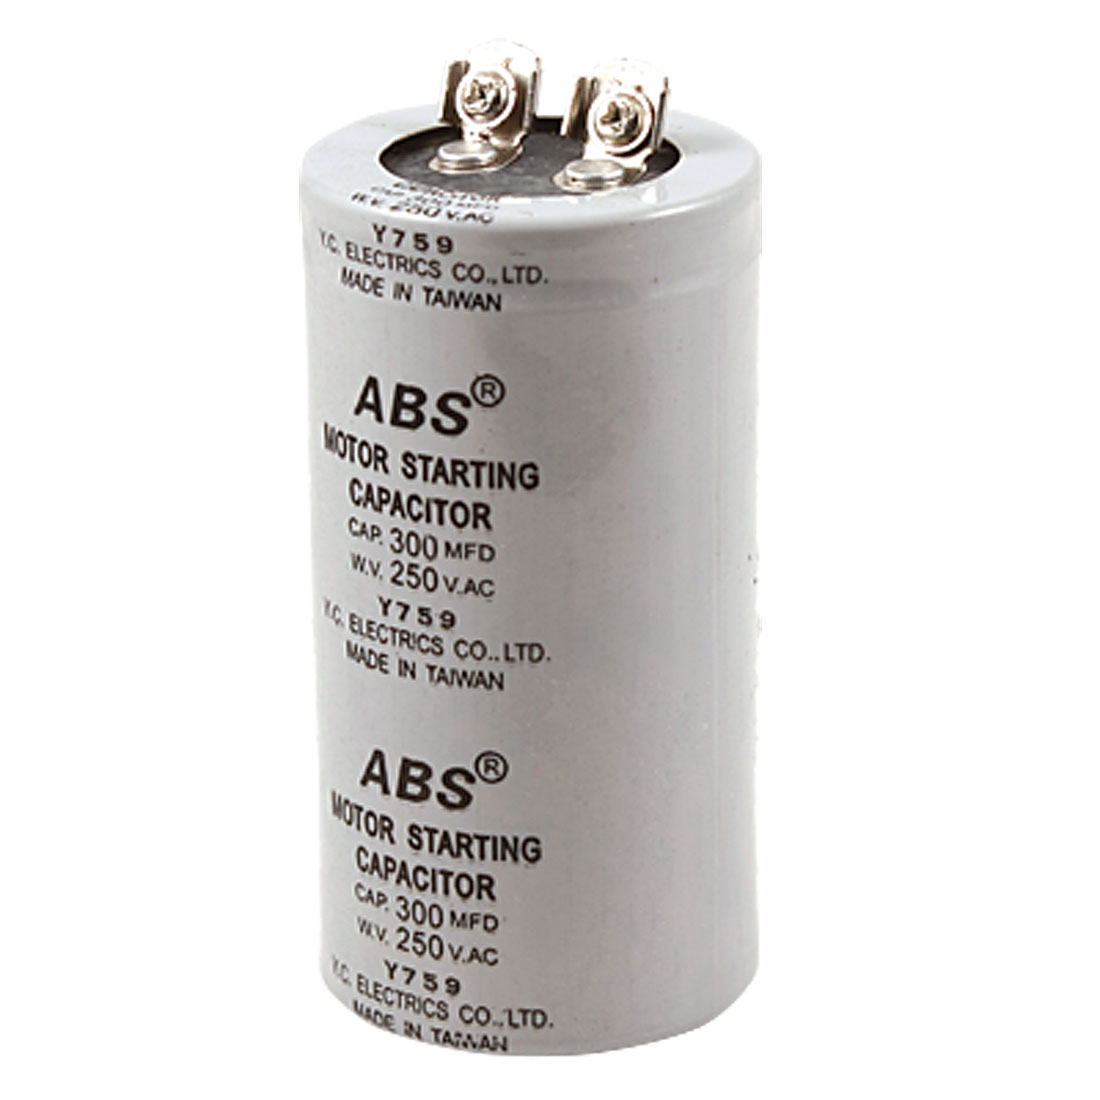 Gray Cylinder 300uF 300MFD 250V AC Motor Start-up Capacitor